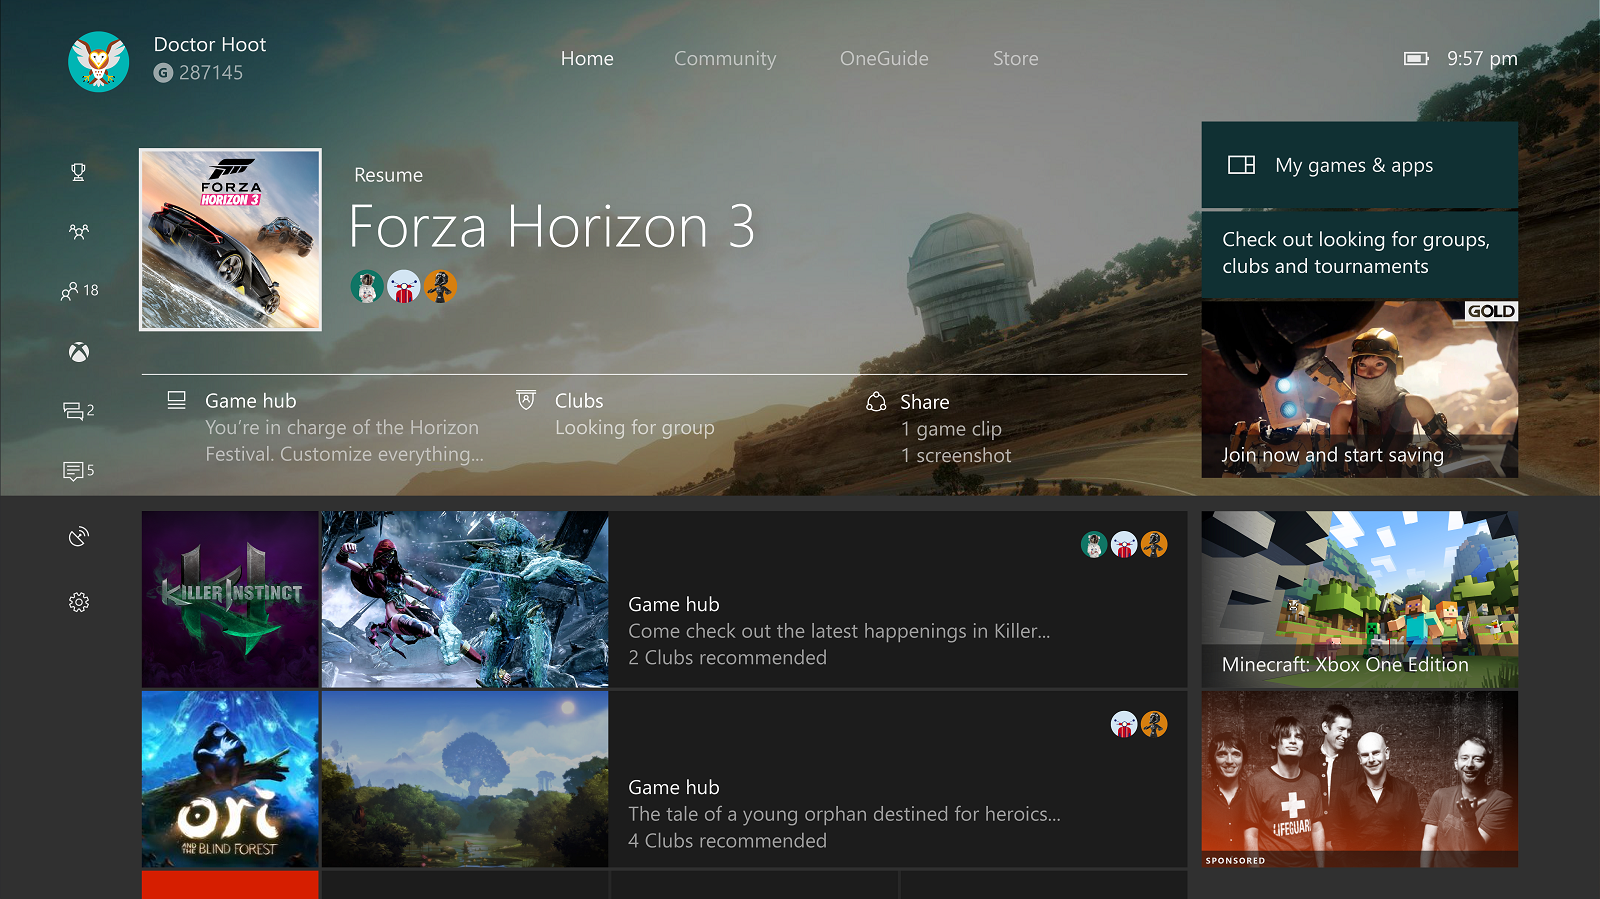 Xbox One app user interface